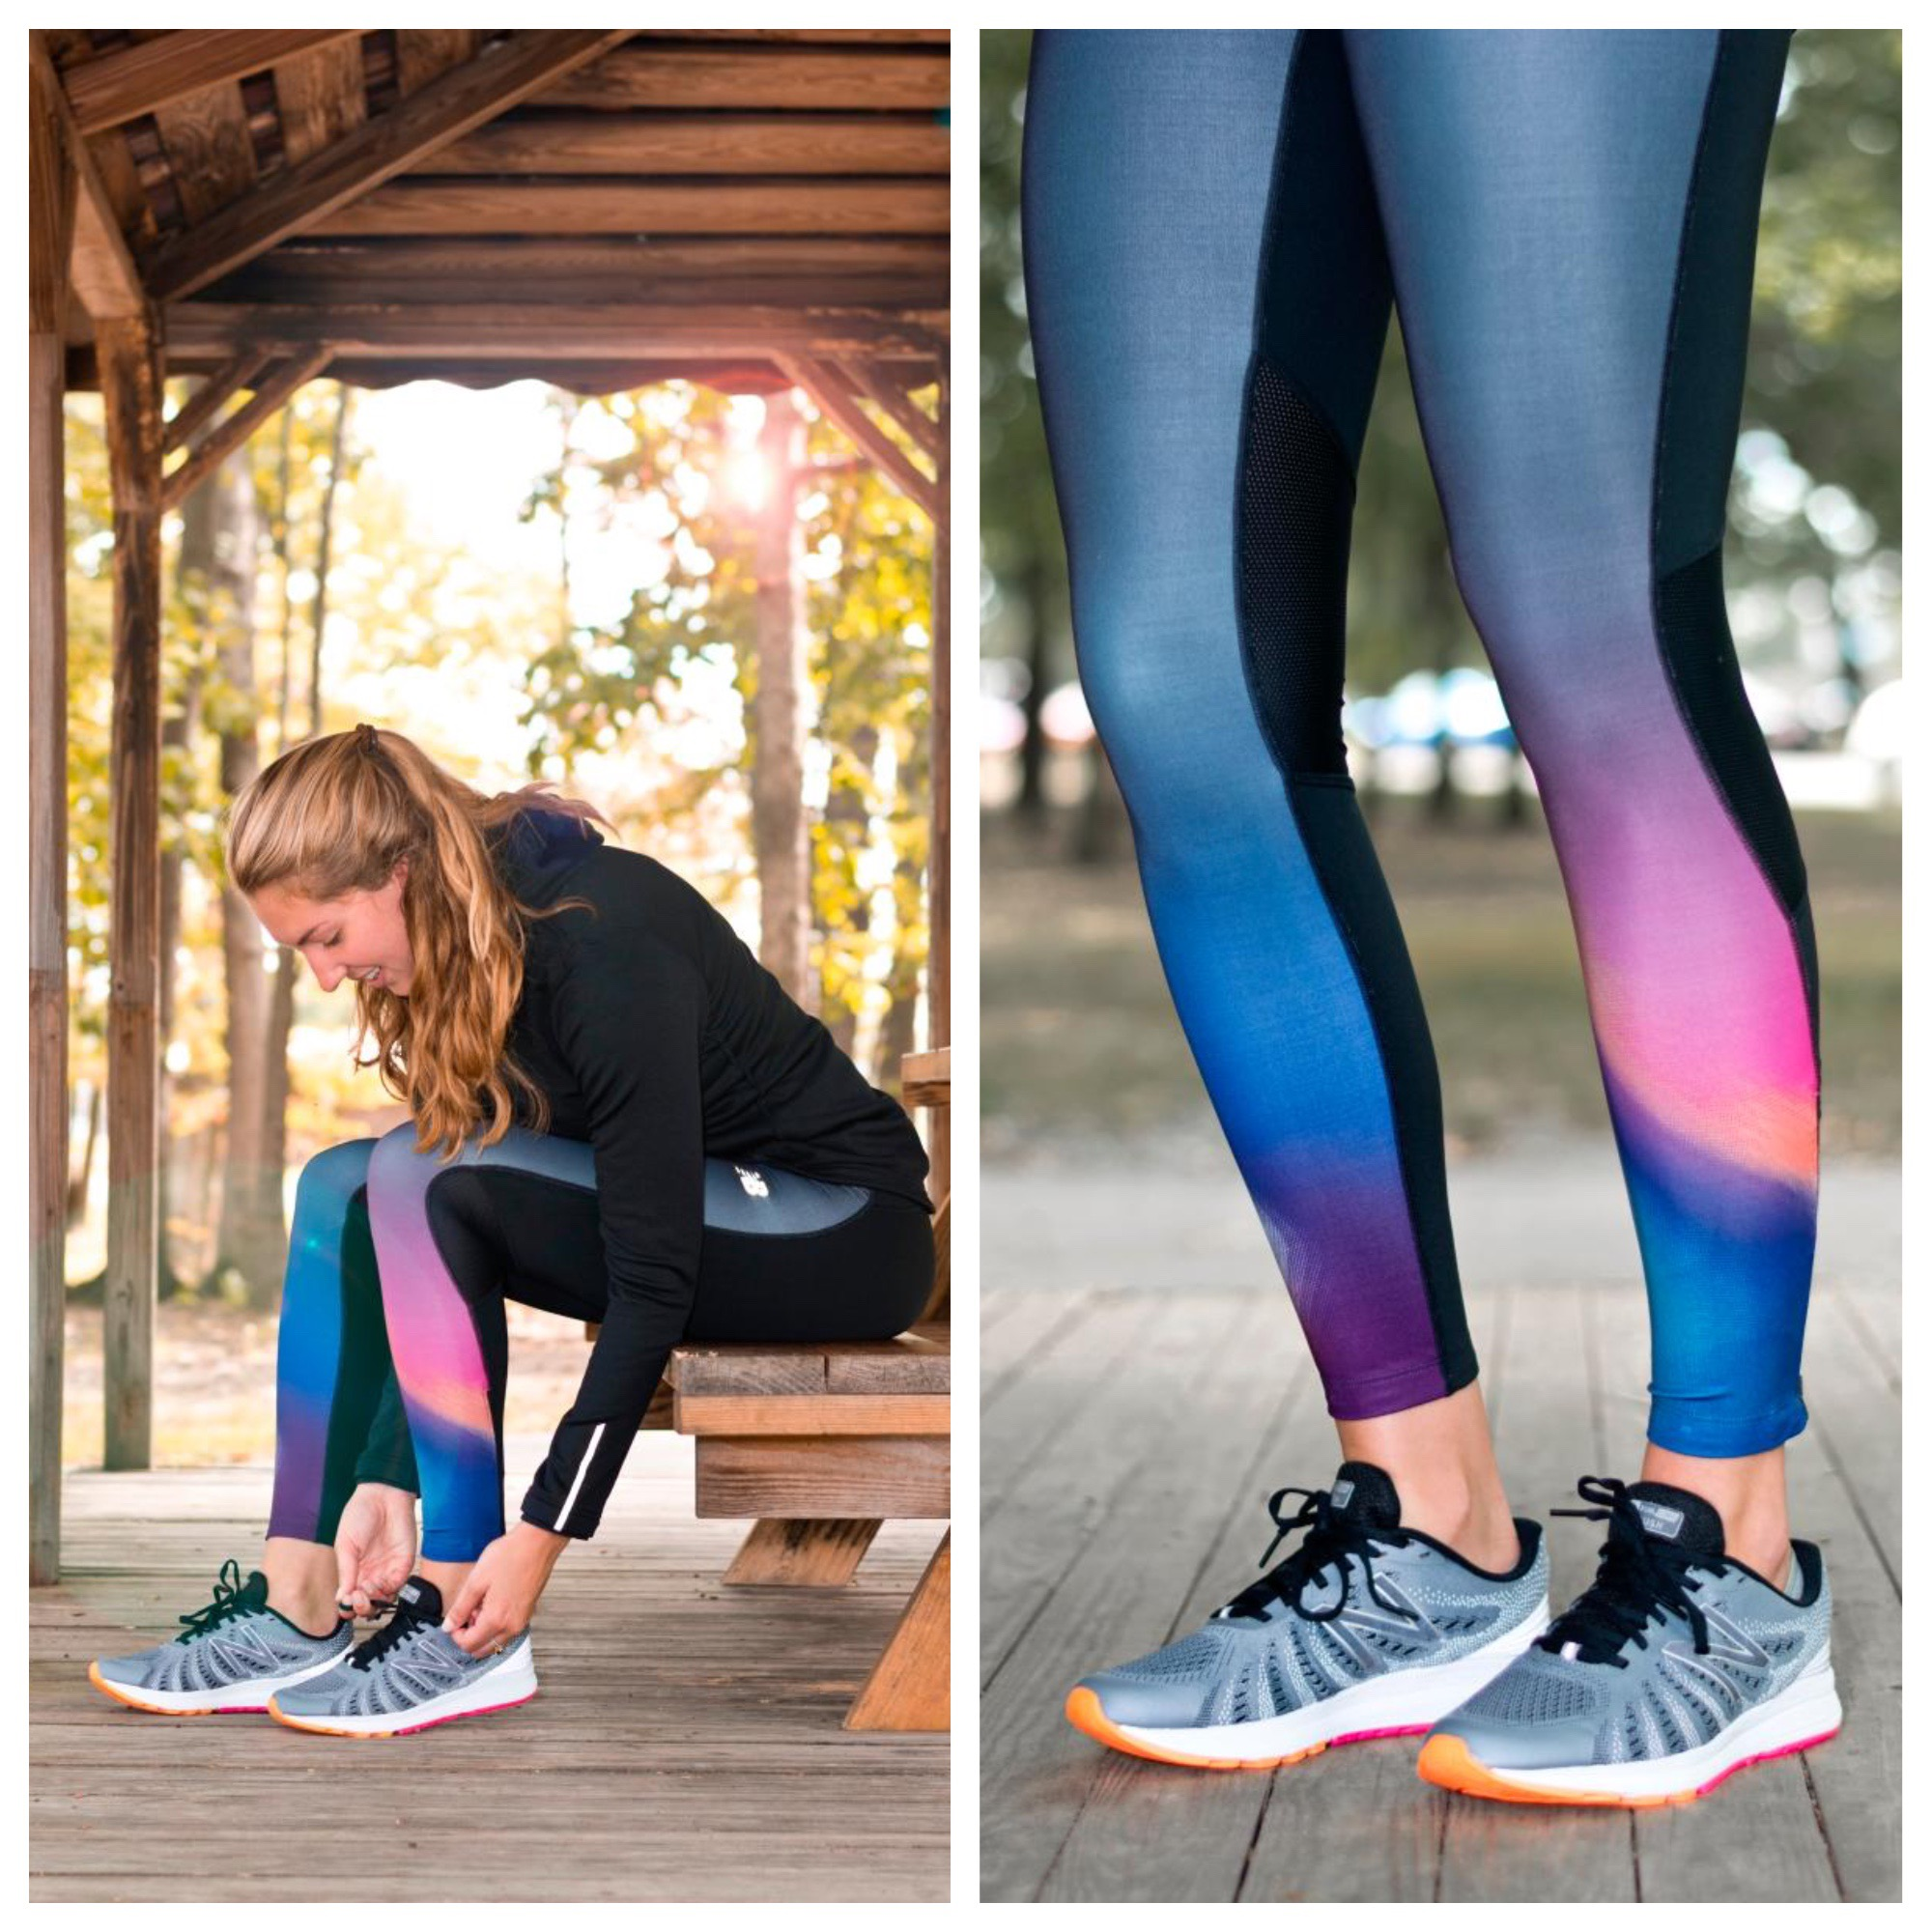 ceec06d08bc13 These New Balance leggings are comfortable, nice and everything pumpkin  spice. The compression style fit and gourd-geous New Balance Impact Premium  Print ...